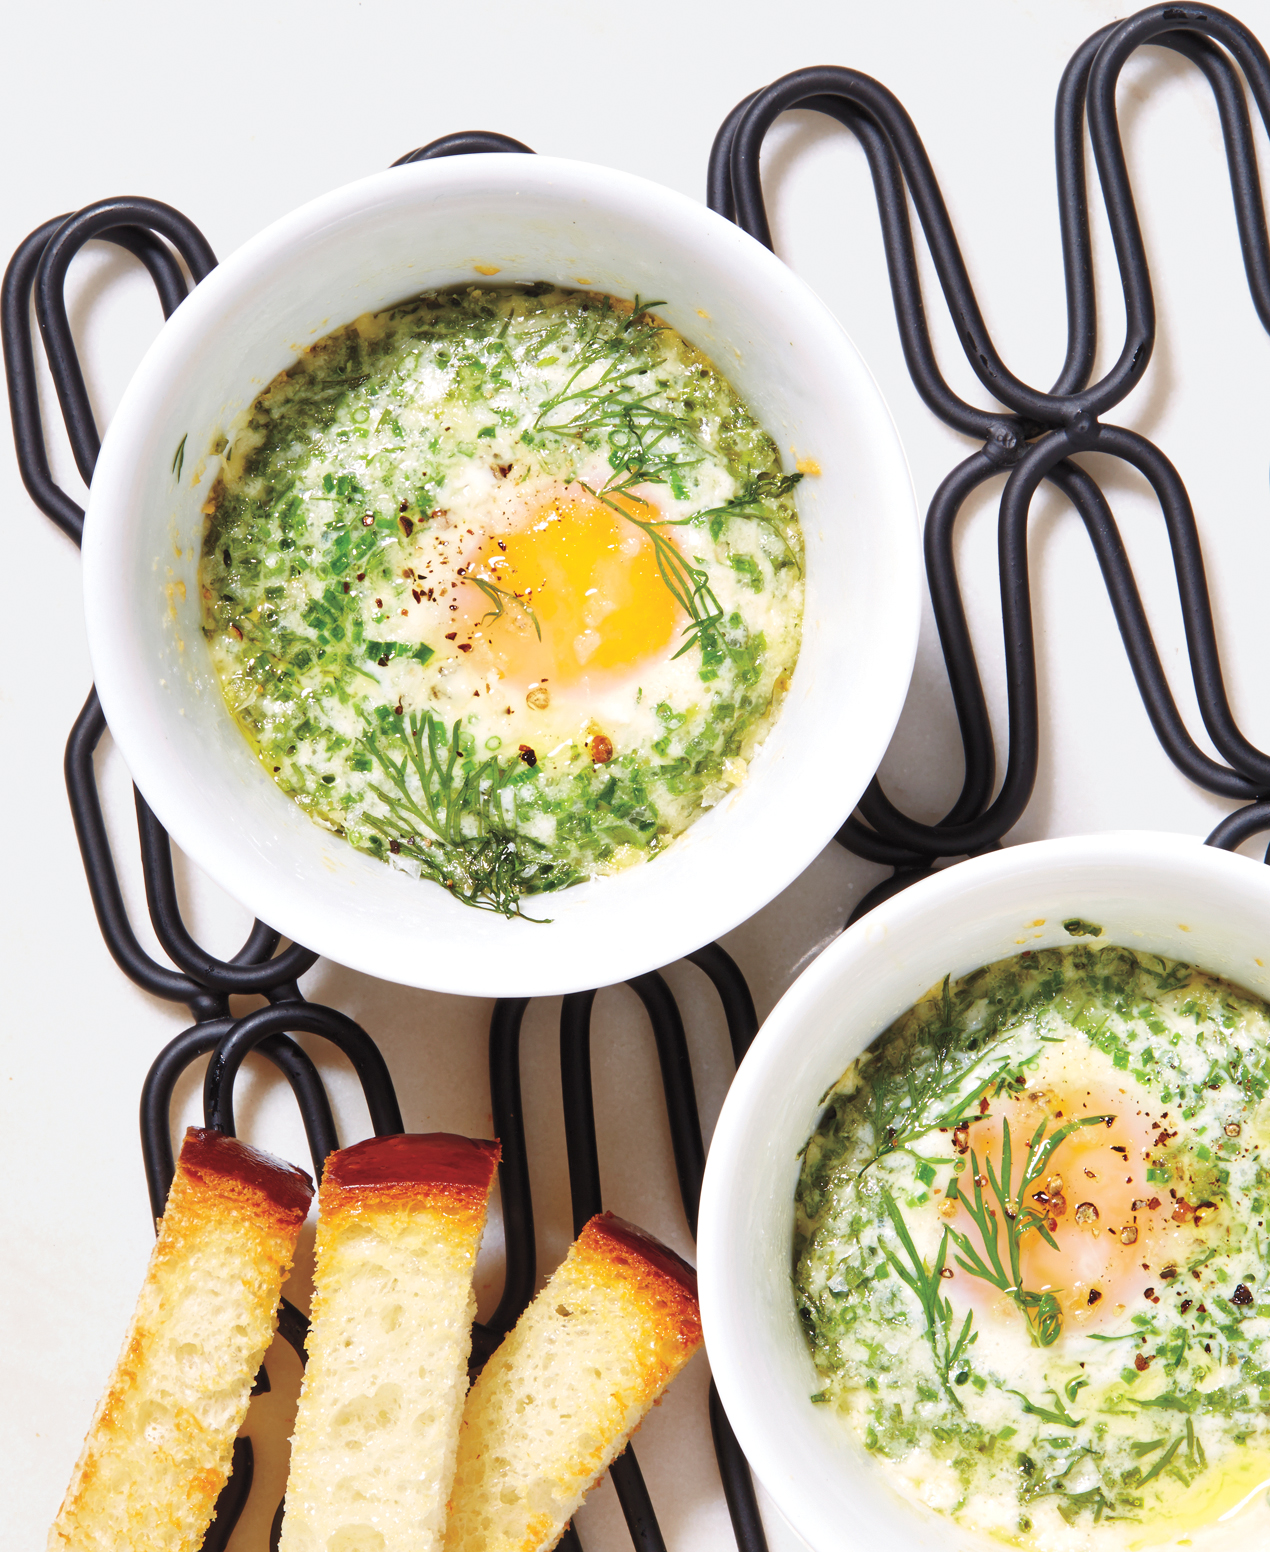 Breakfast ideas with eggs - Baked Eggs With Parmesan and Herbs